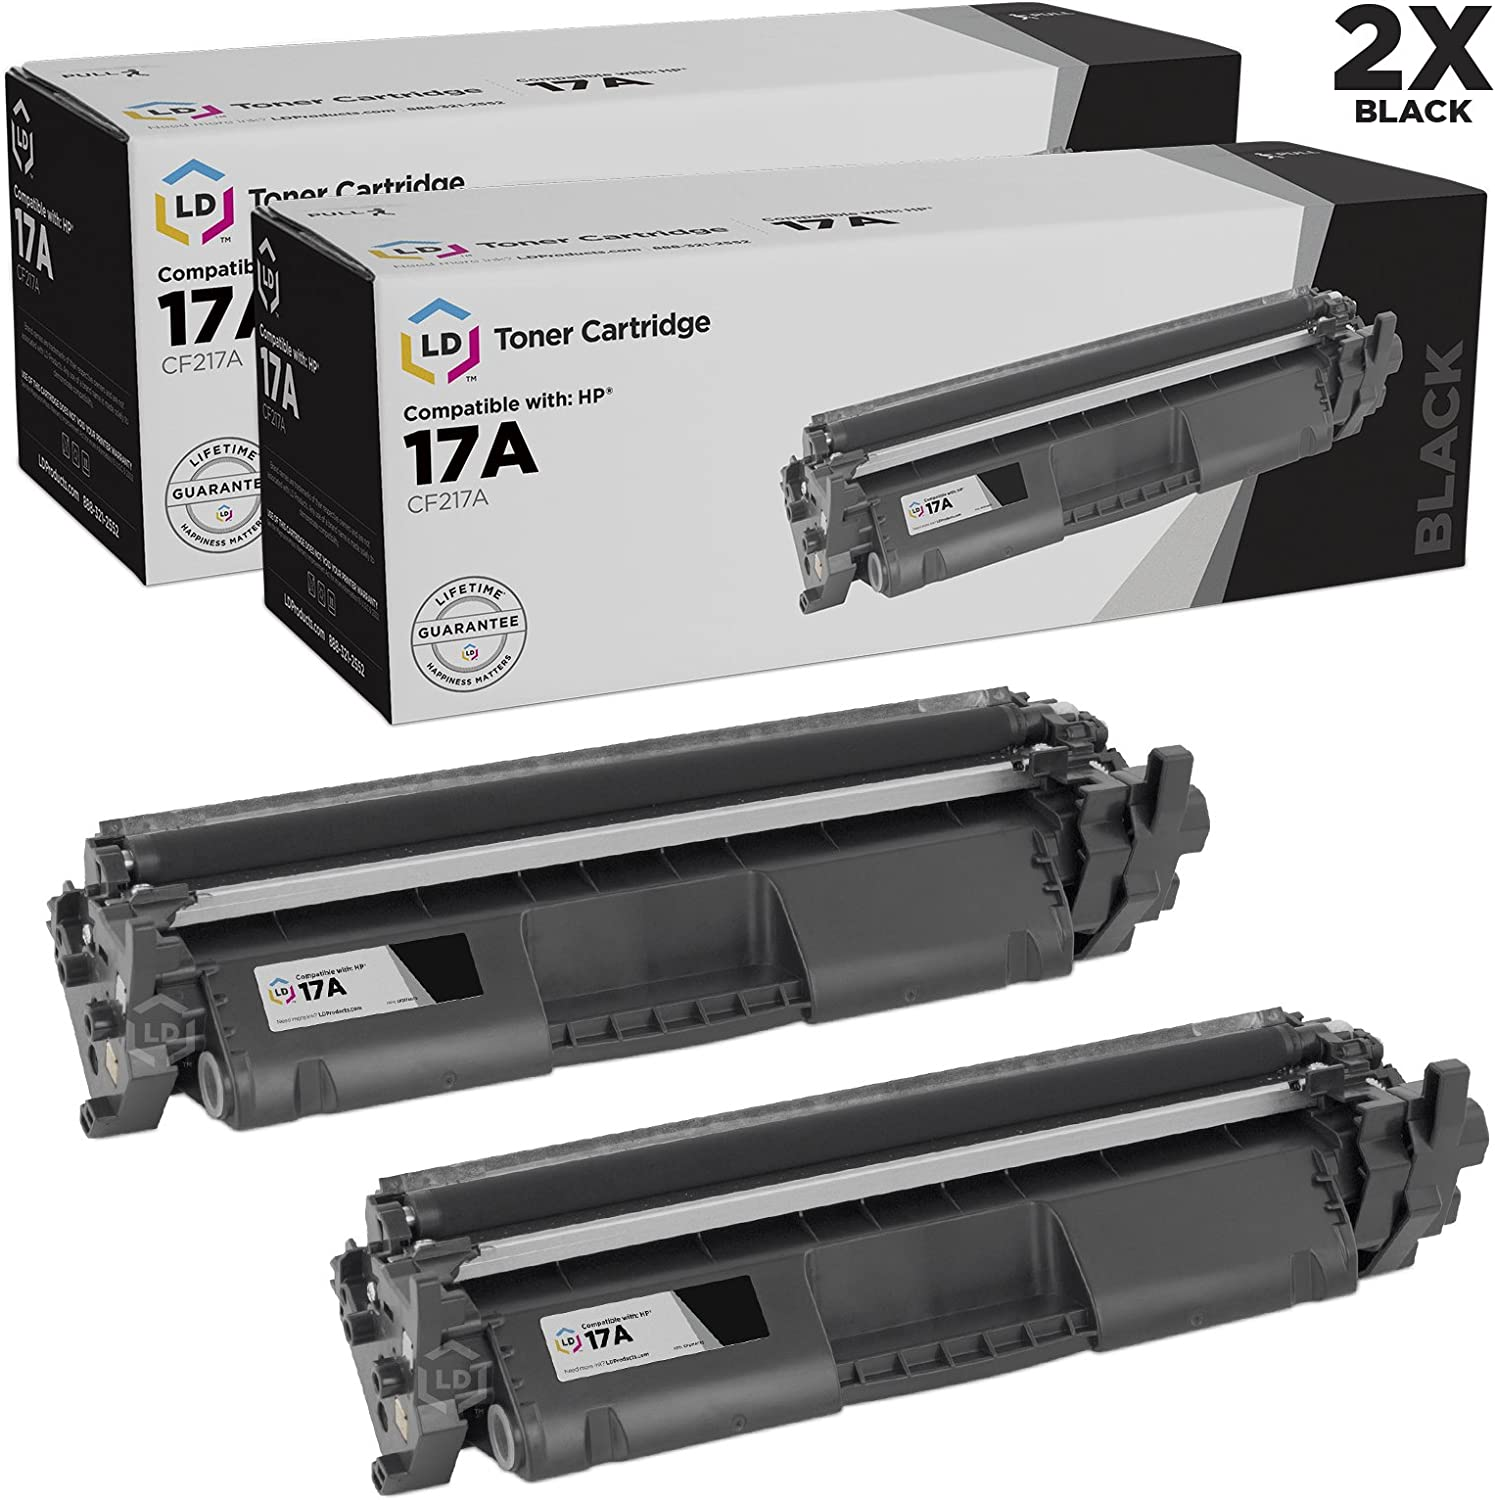 LD Compatible Toner Cartridge Replacement for HP 17A CF217A (Black, 2-Pack)